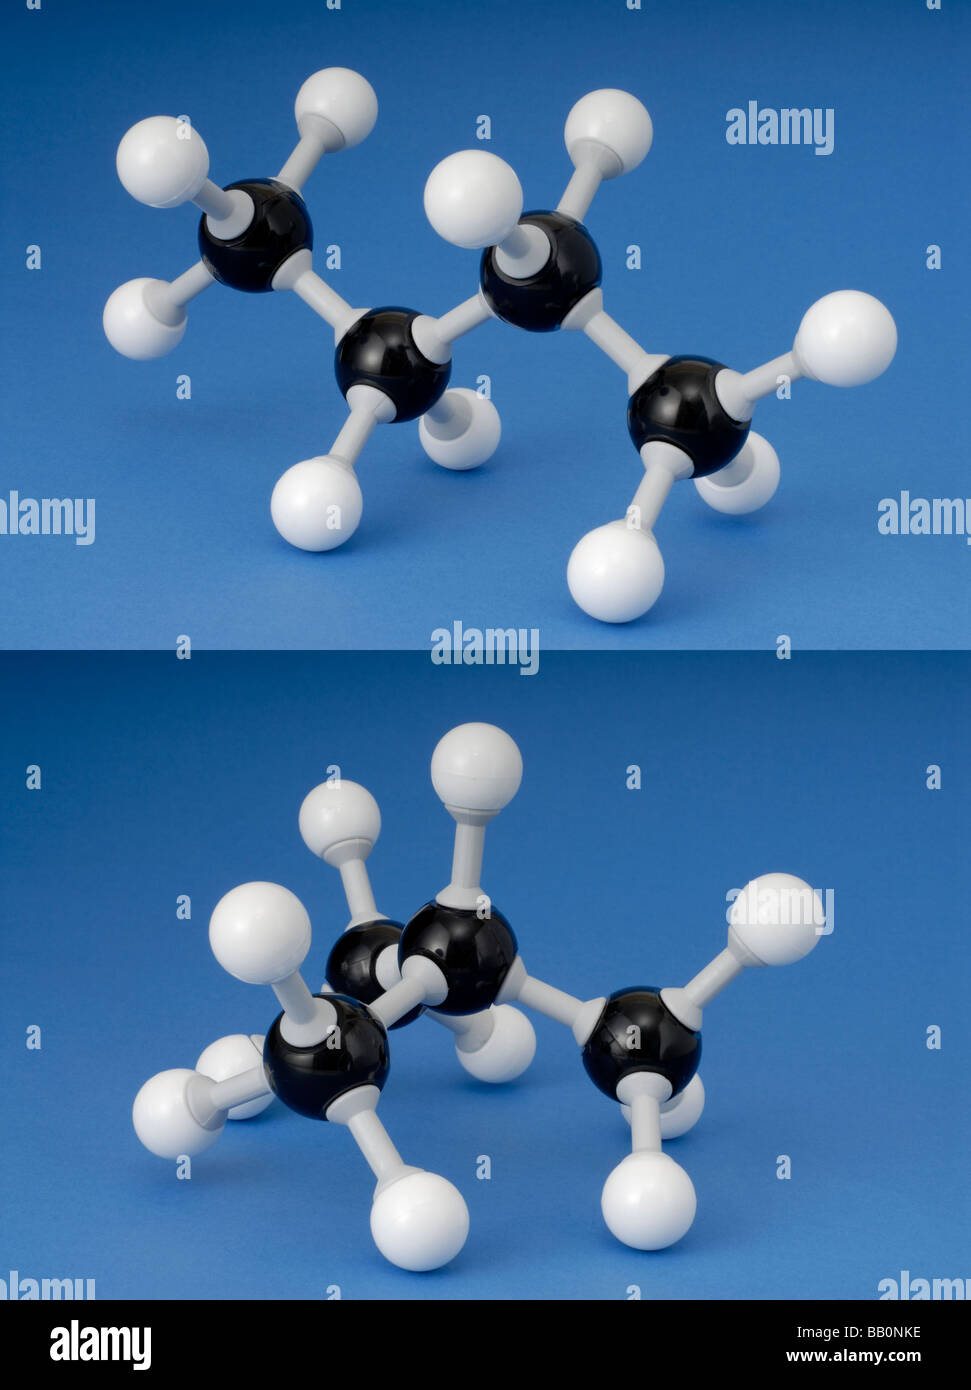 isomers of butane - Stock Image